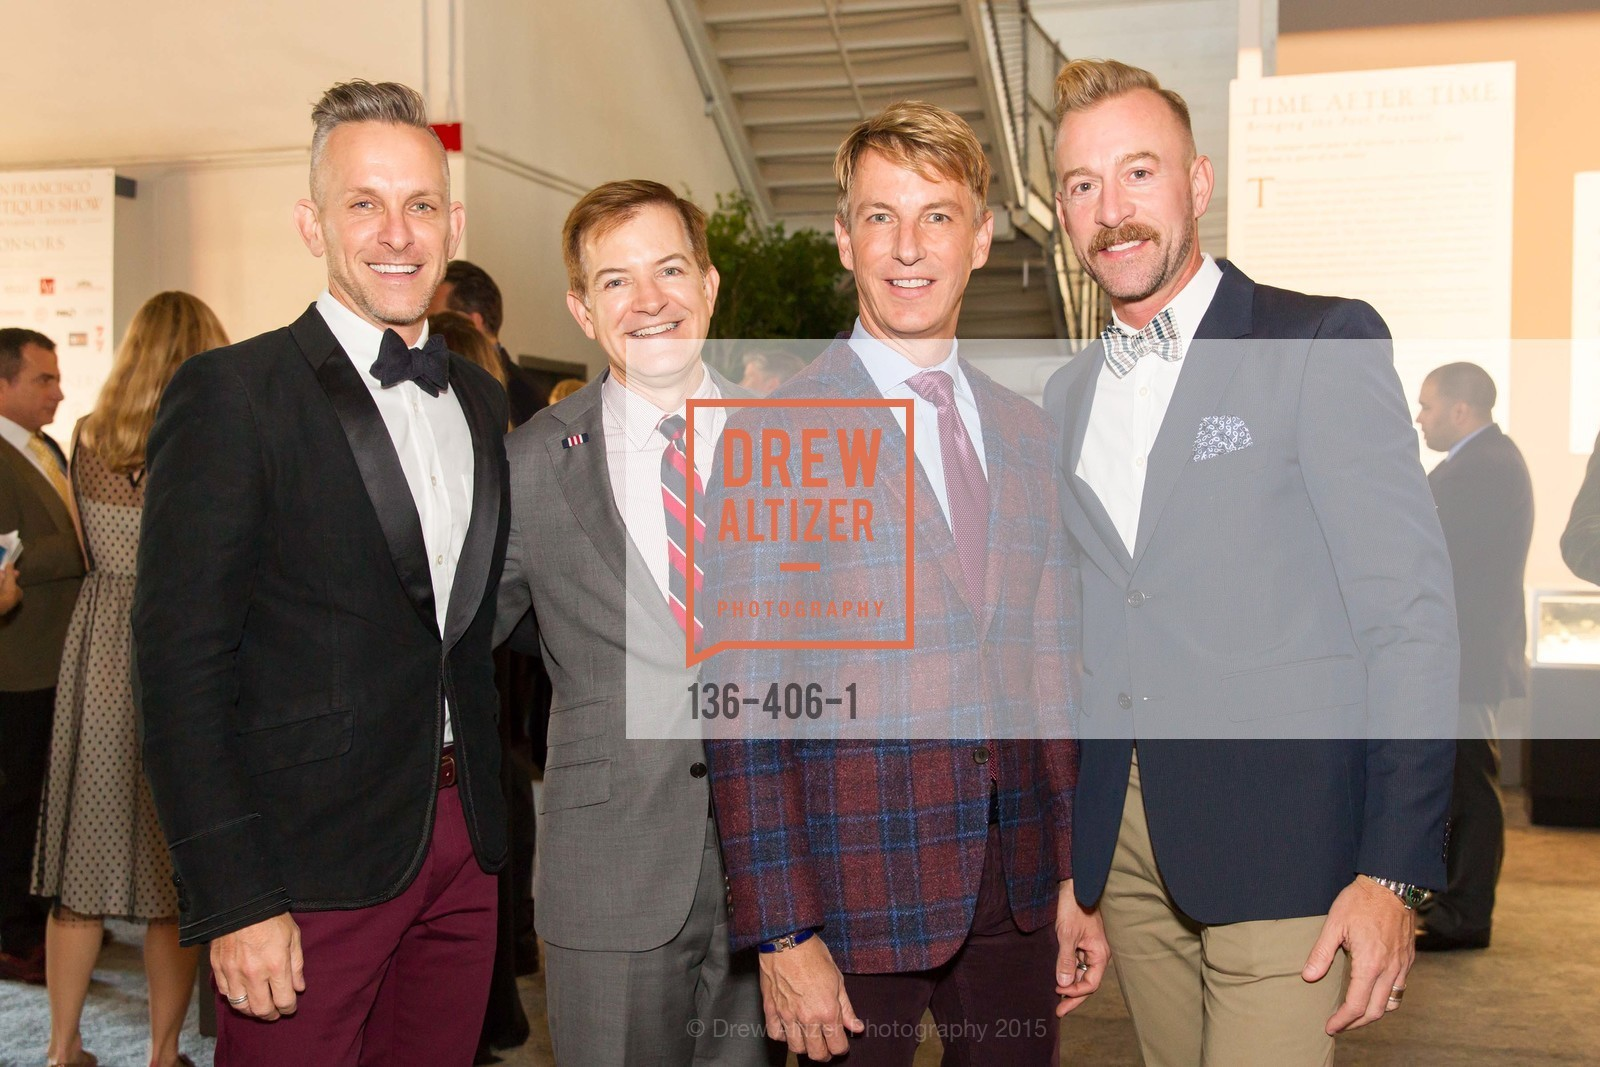 Jay Jeffers, Trent Norris, Jack Calhoun, Michael Purdy, The San Francisco Fall Antiques Show, Festival Pavilion, Fort Mason, October 21st, 2015,Drew Altizer, Drew Altizer Photography, full-service agency, private events, San Francisco photographer, photographer california